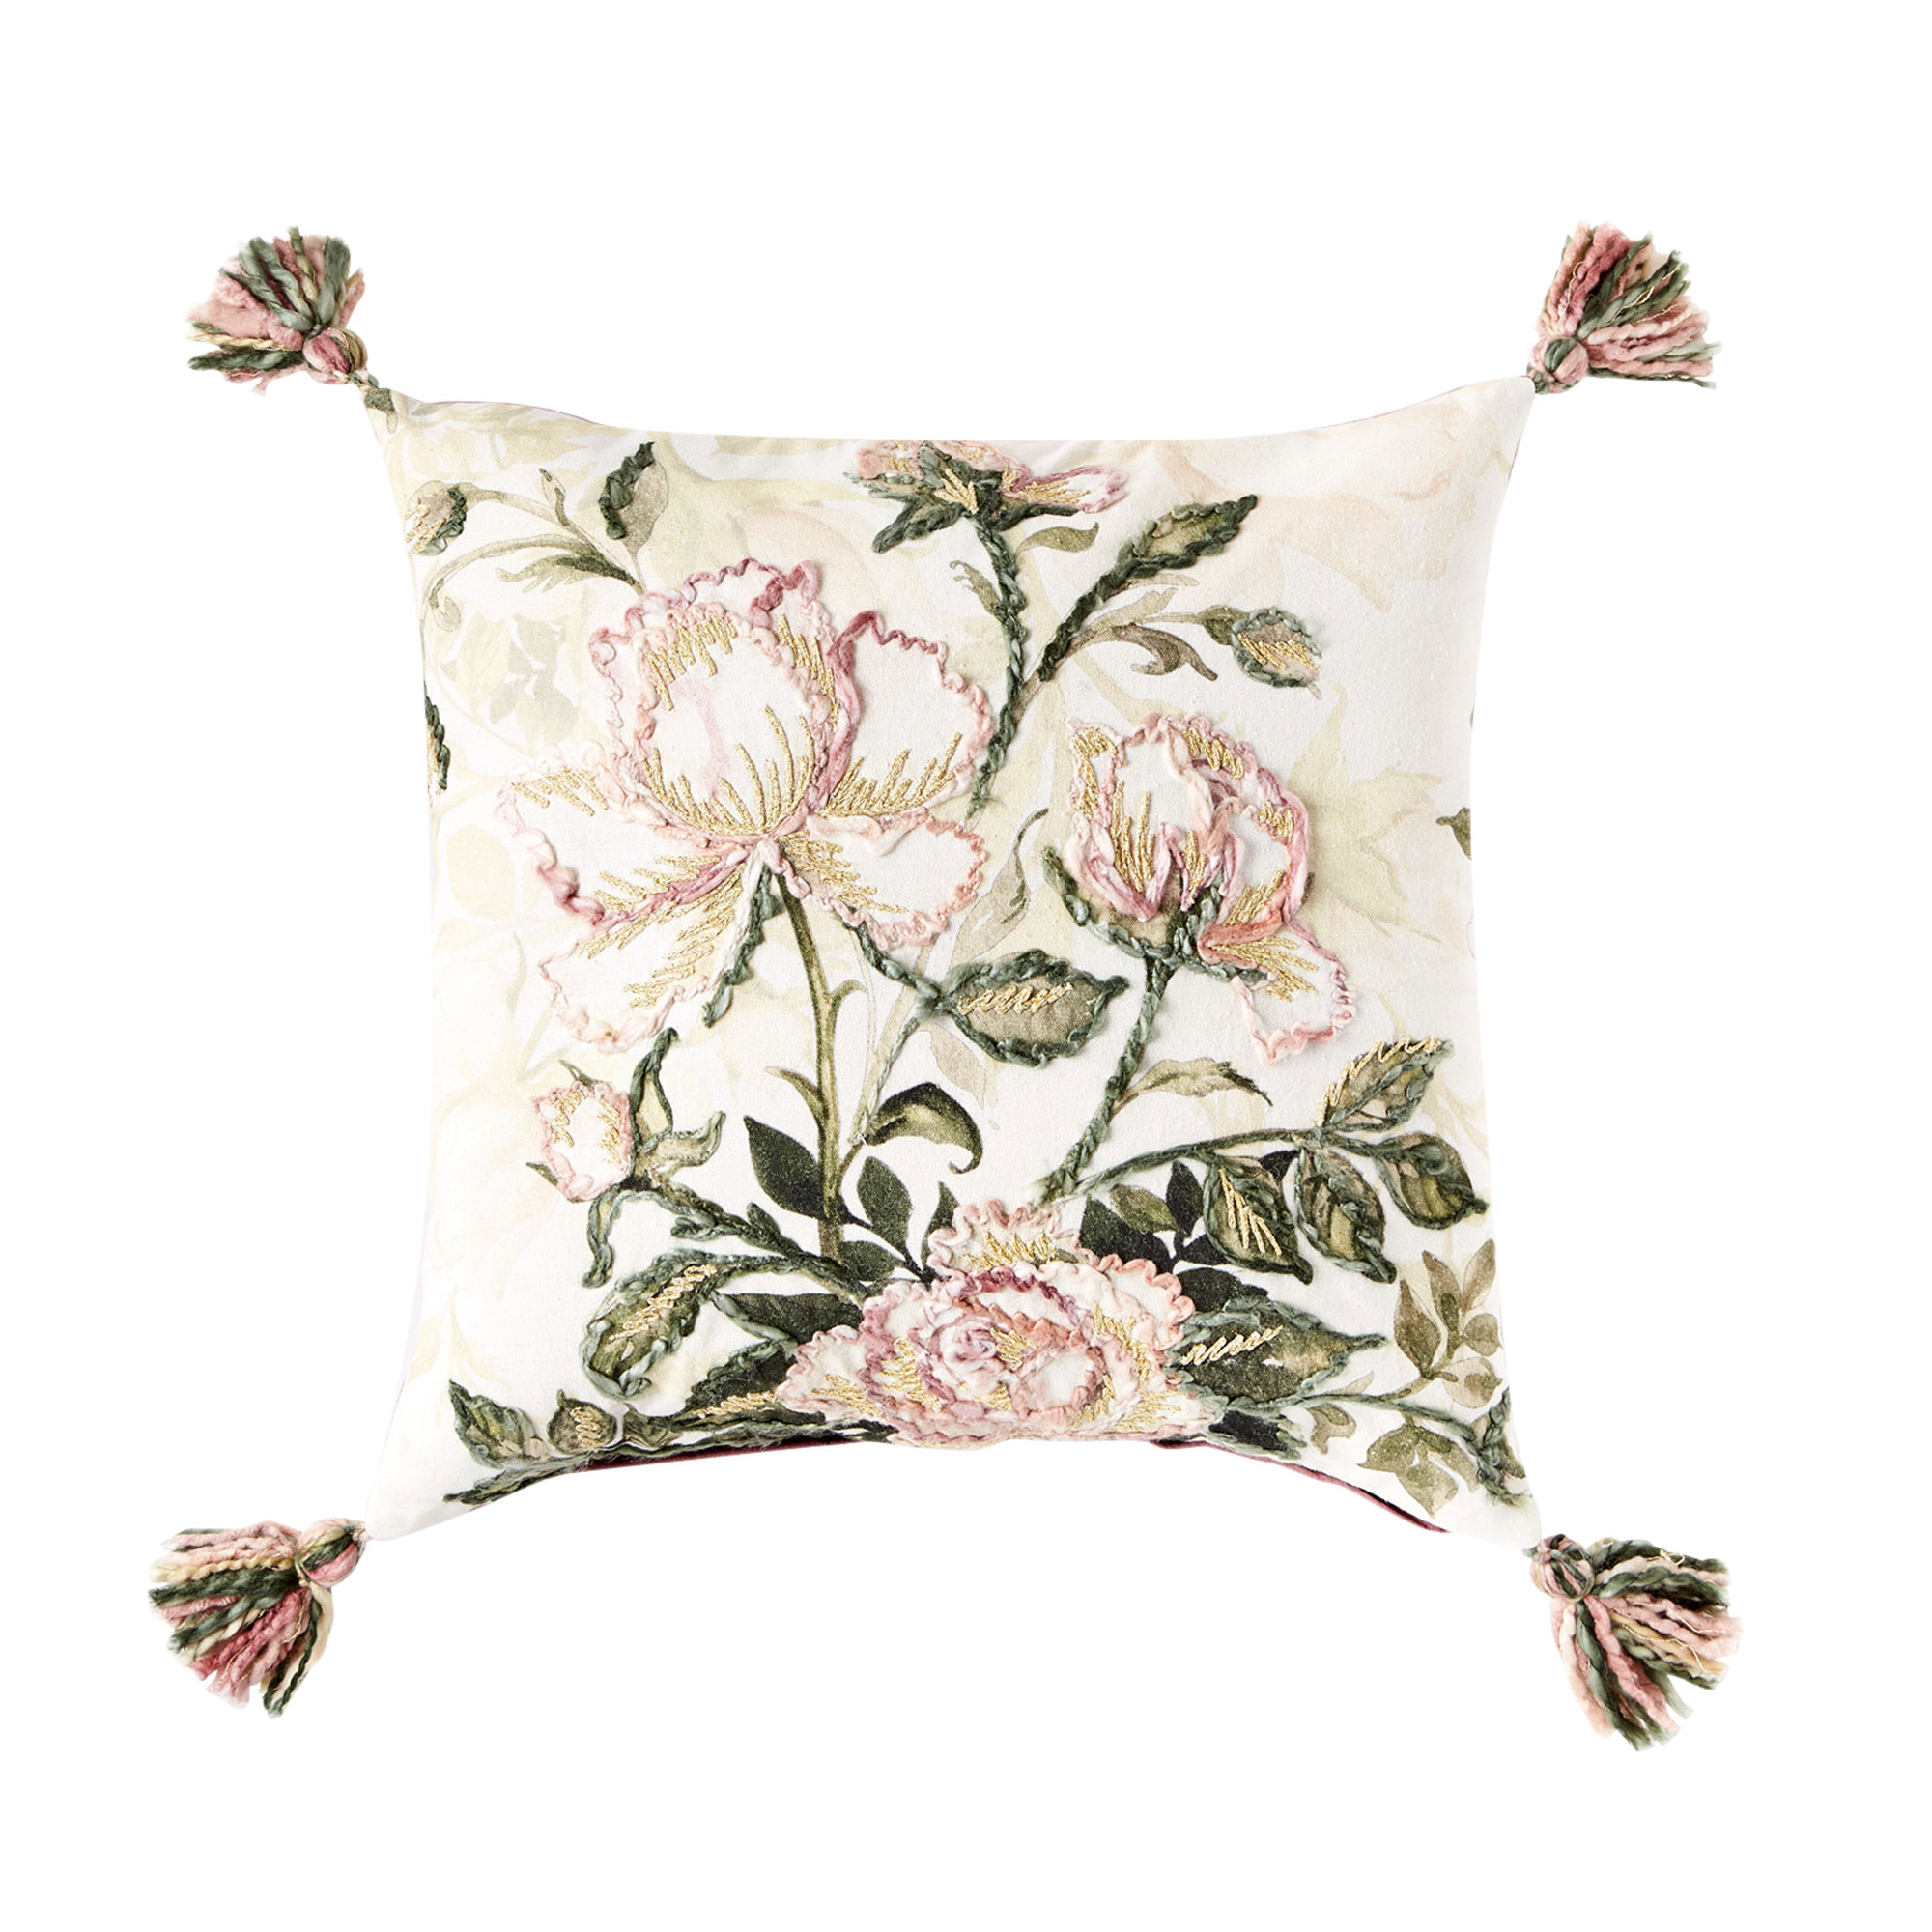 Petal And Stone 20 Embellished Floral Throw Pillow Christmas Tree Shops And That Home Decor Furniture Gifts Store